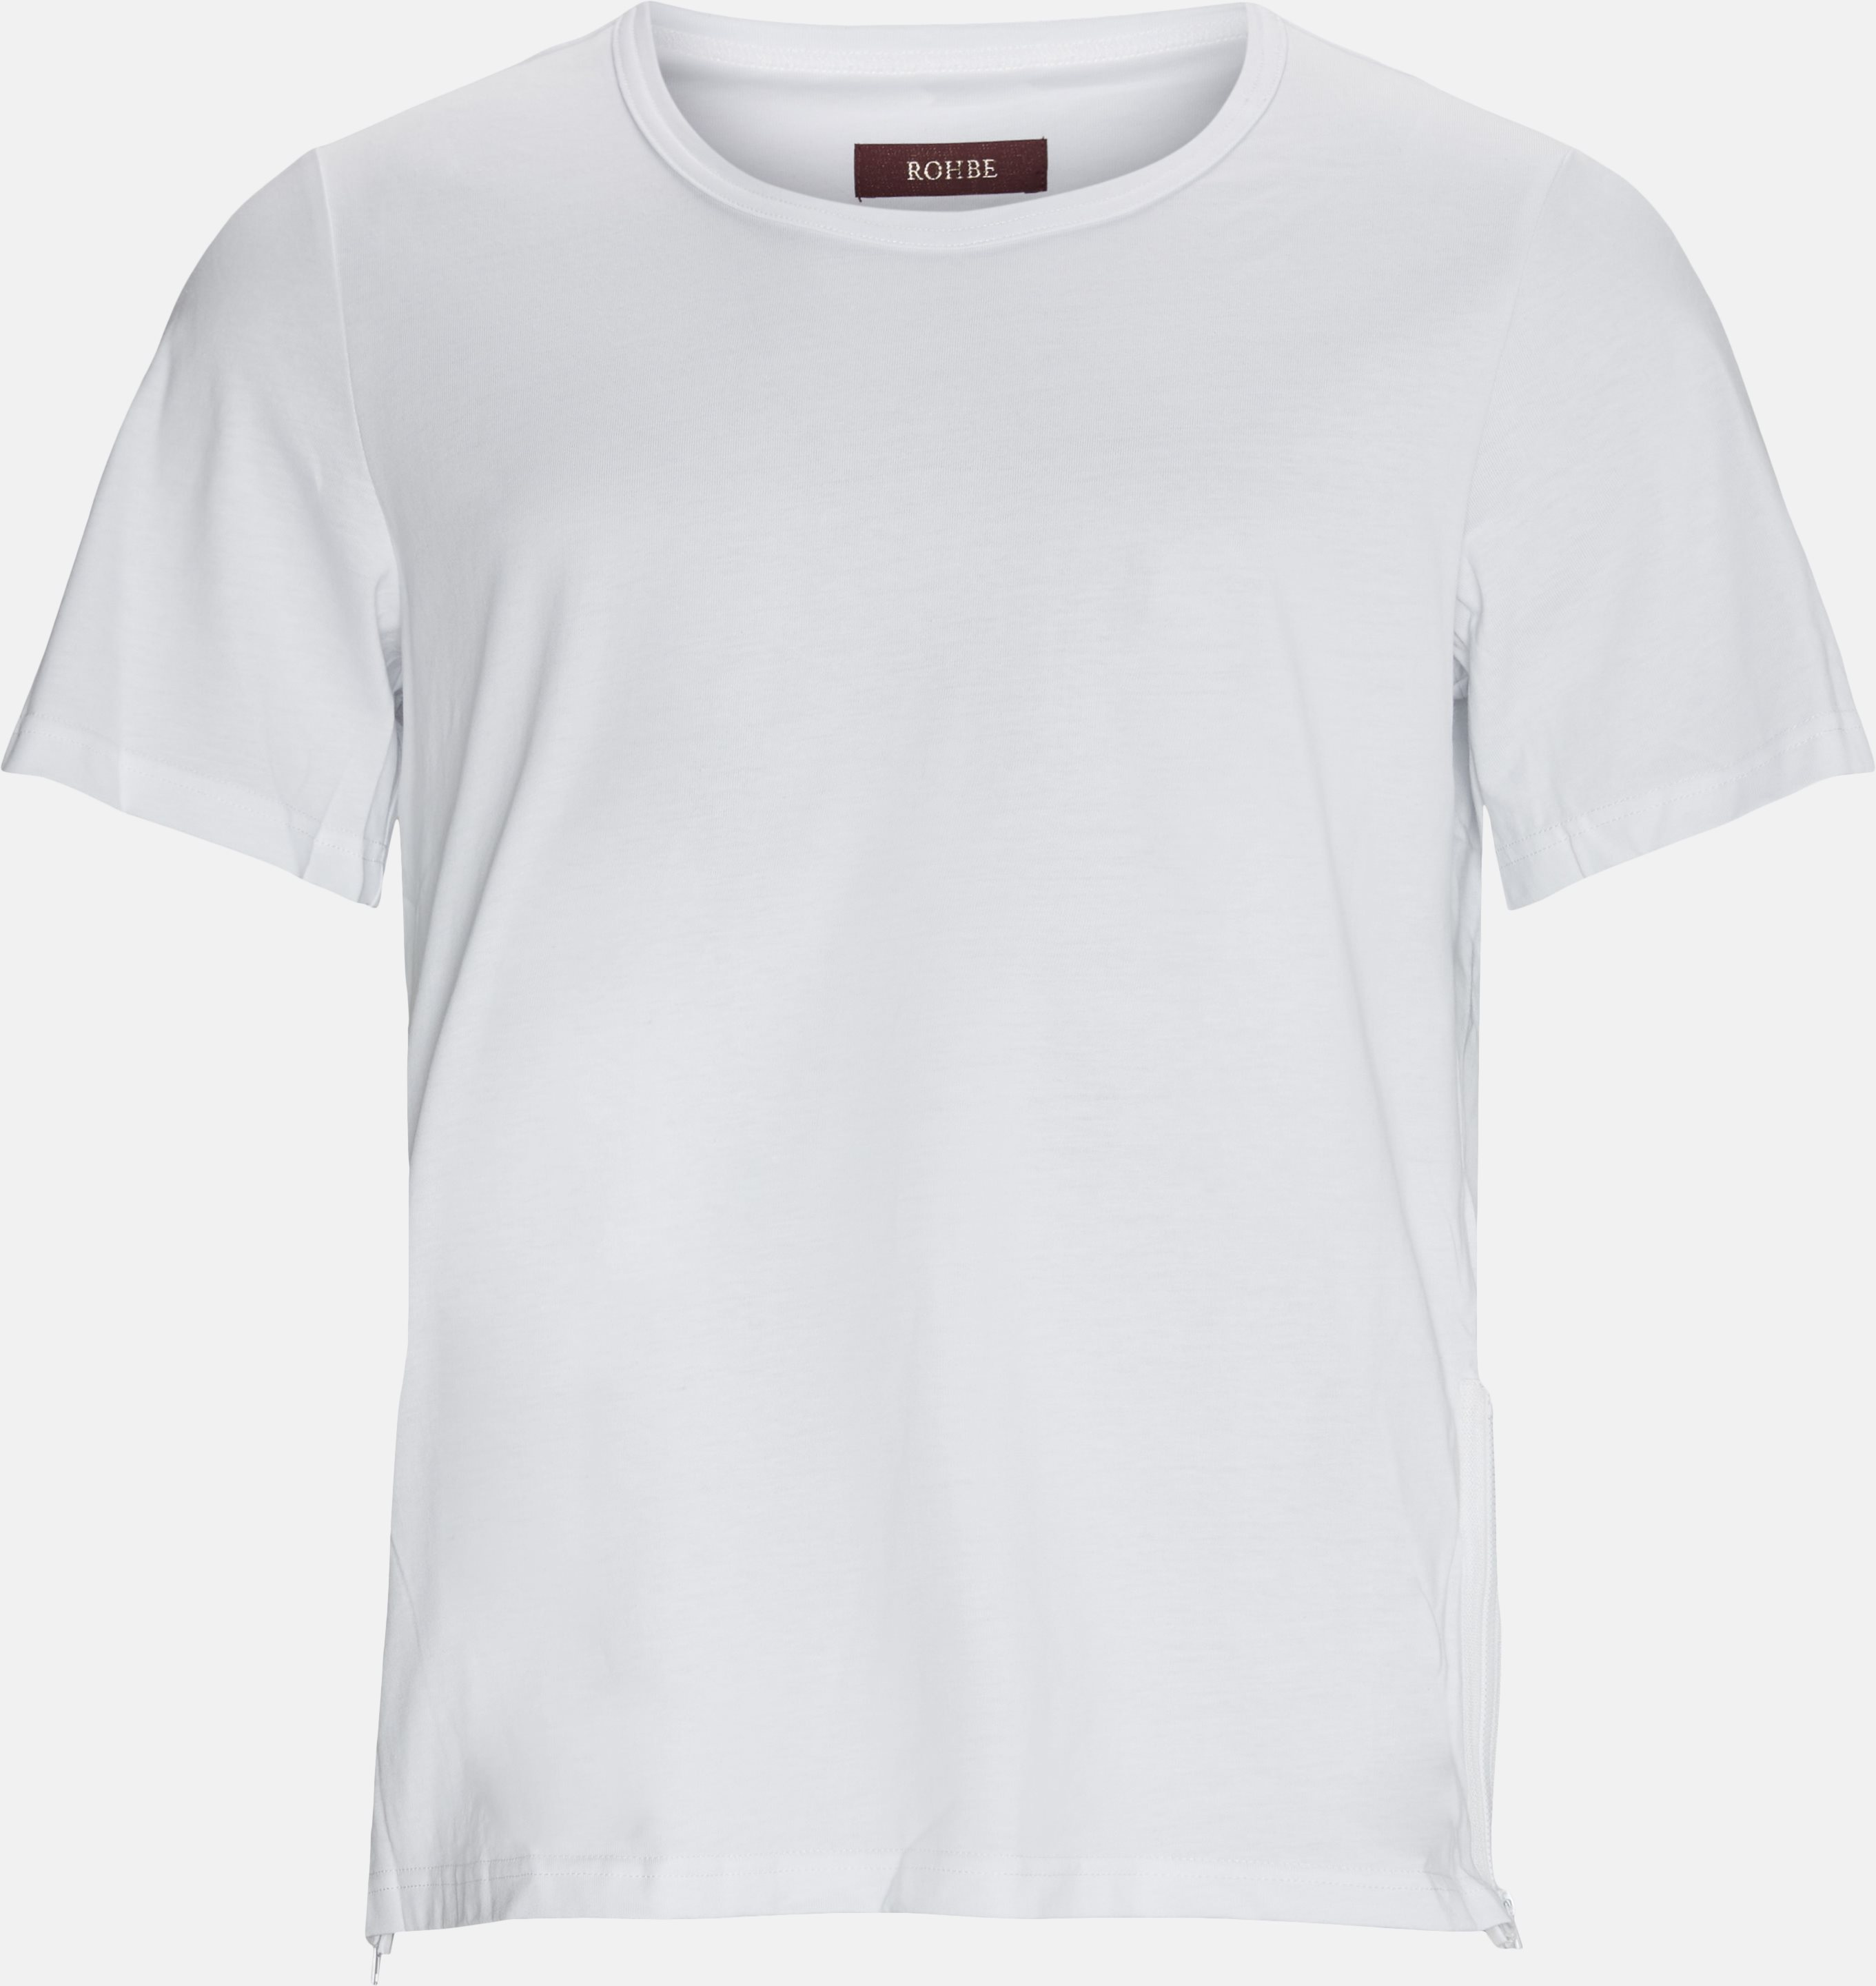 T-shirts - Regular fit - White